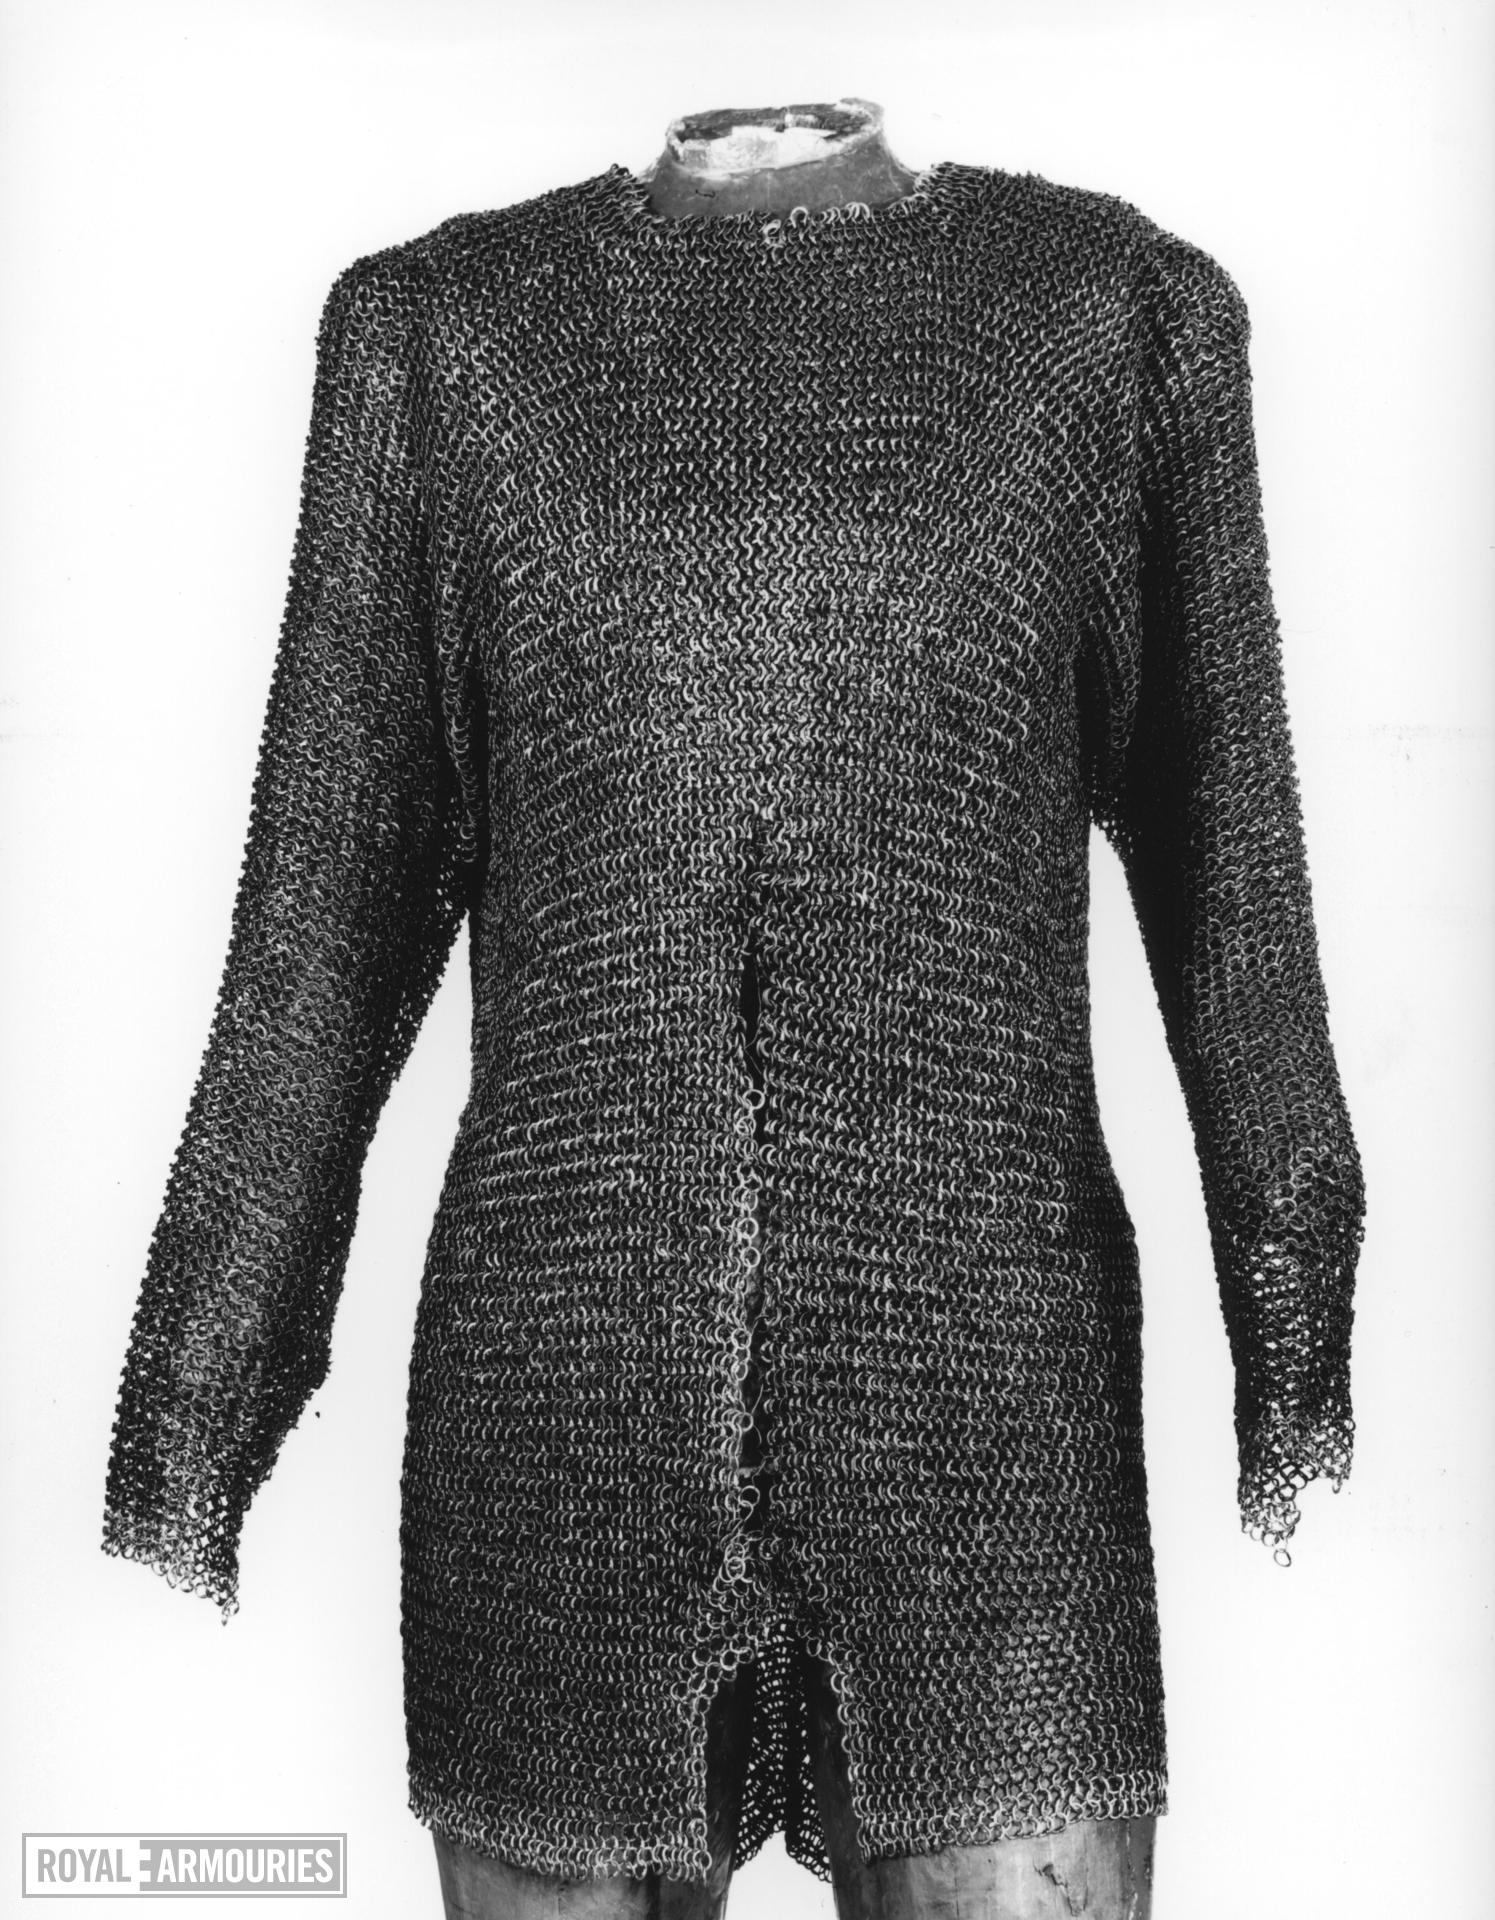 Mail shirt. Probably German, 15th century (III.4675)